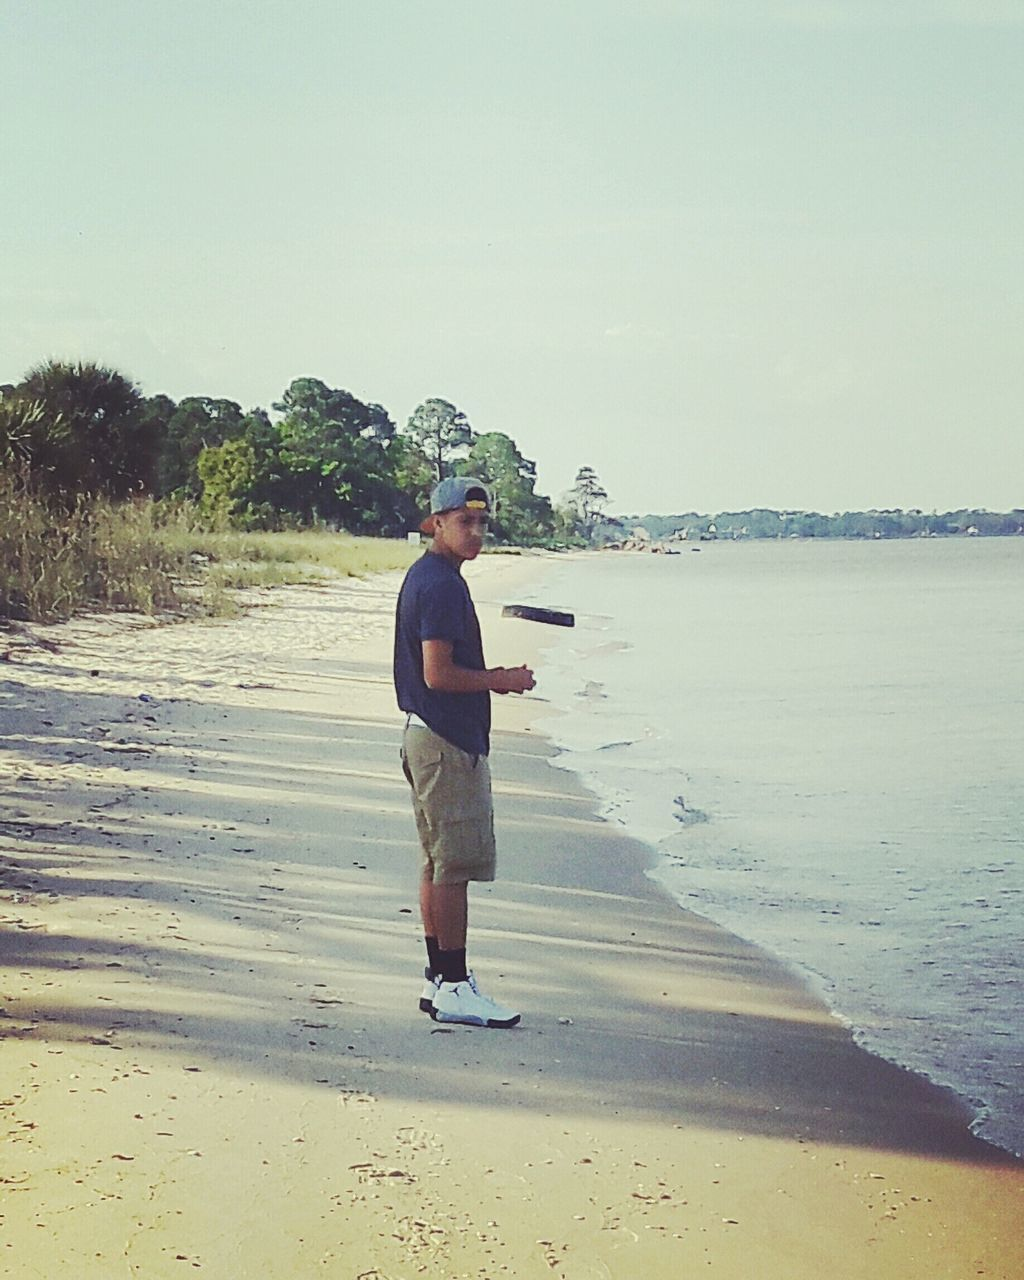 full length, one person, real people, beach, leisure activity, standing, lifestyles, senior adult, senior men, nature, day, outdoors, sea, sand, clear sky, water, men, beauty in nature, sky, adult, people, adults only